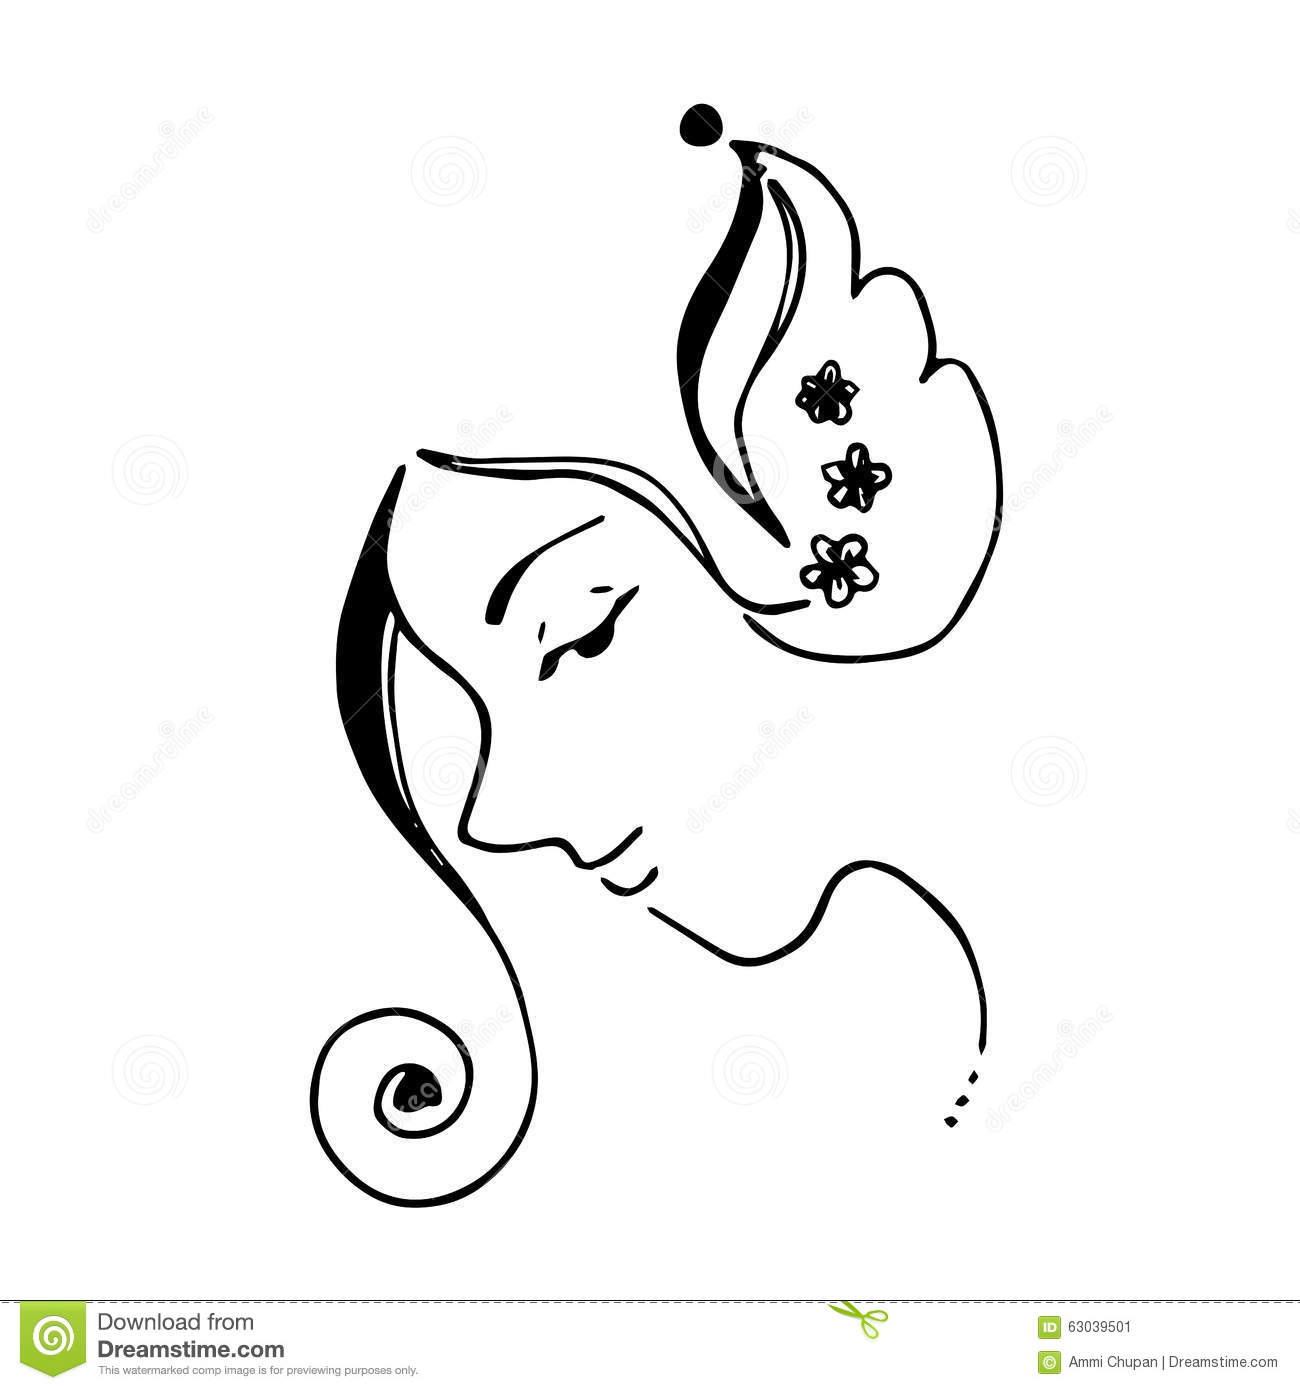 Abstract Face Line Drawing : Abstract women face and flowers illustration curve line